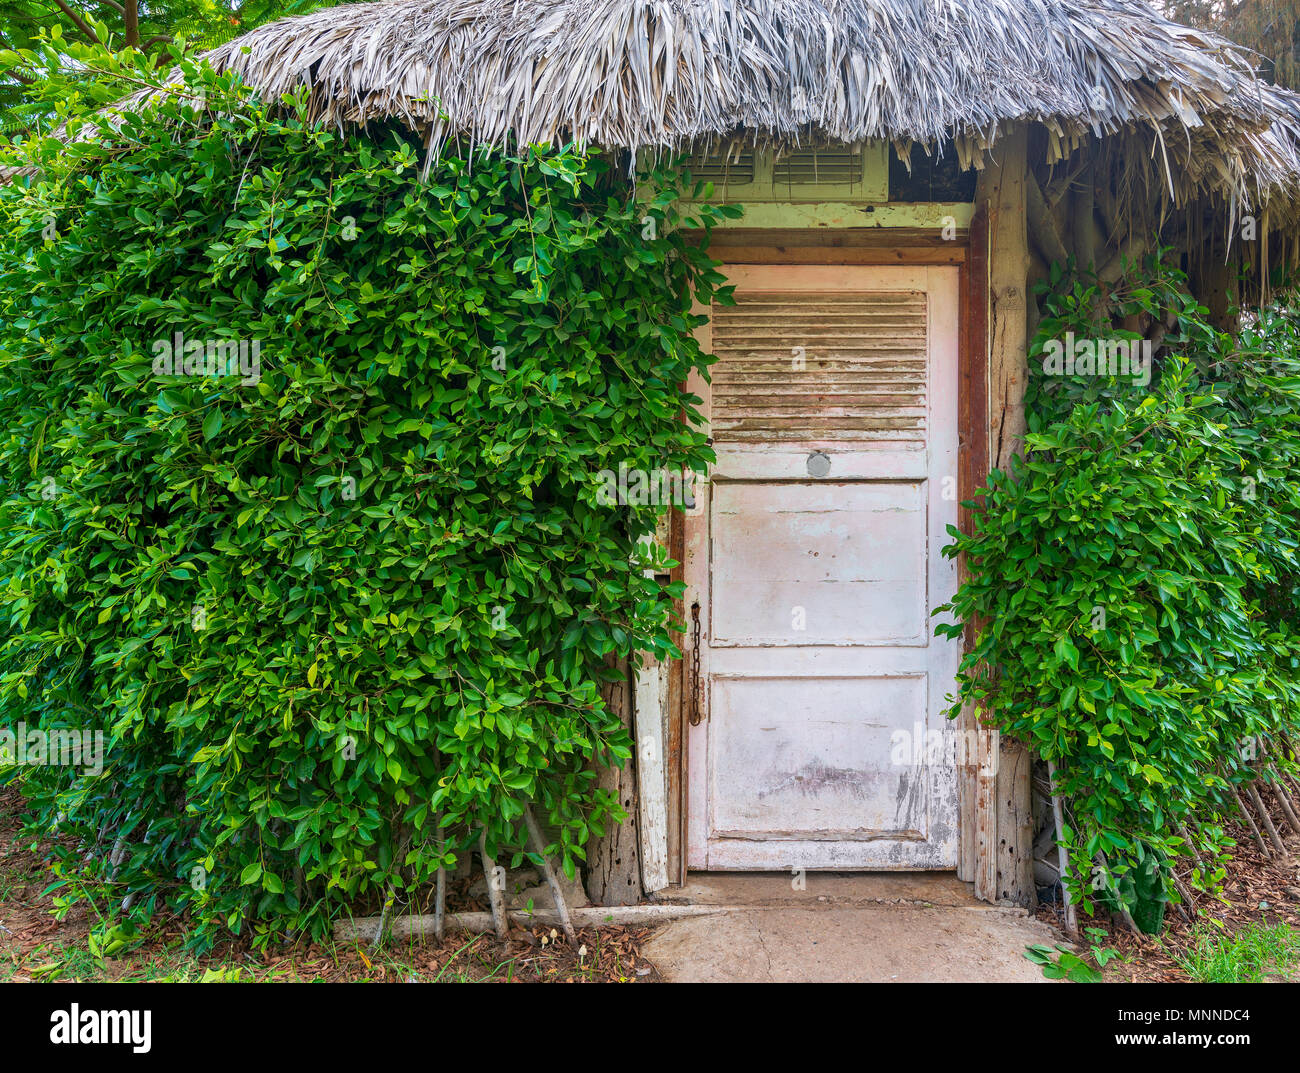 Wooden hut with closed wooden white grunge door surrounded by dense green plants at Montaza public park, Alexandria, Egypt - Stock Image